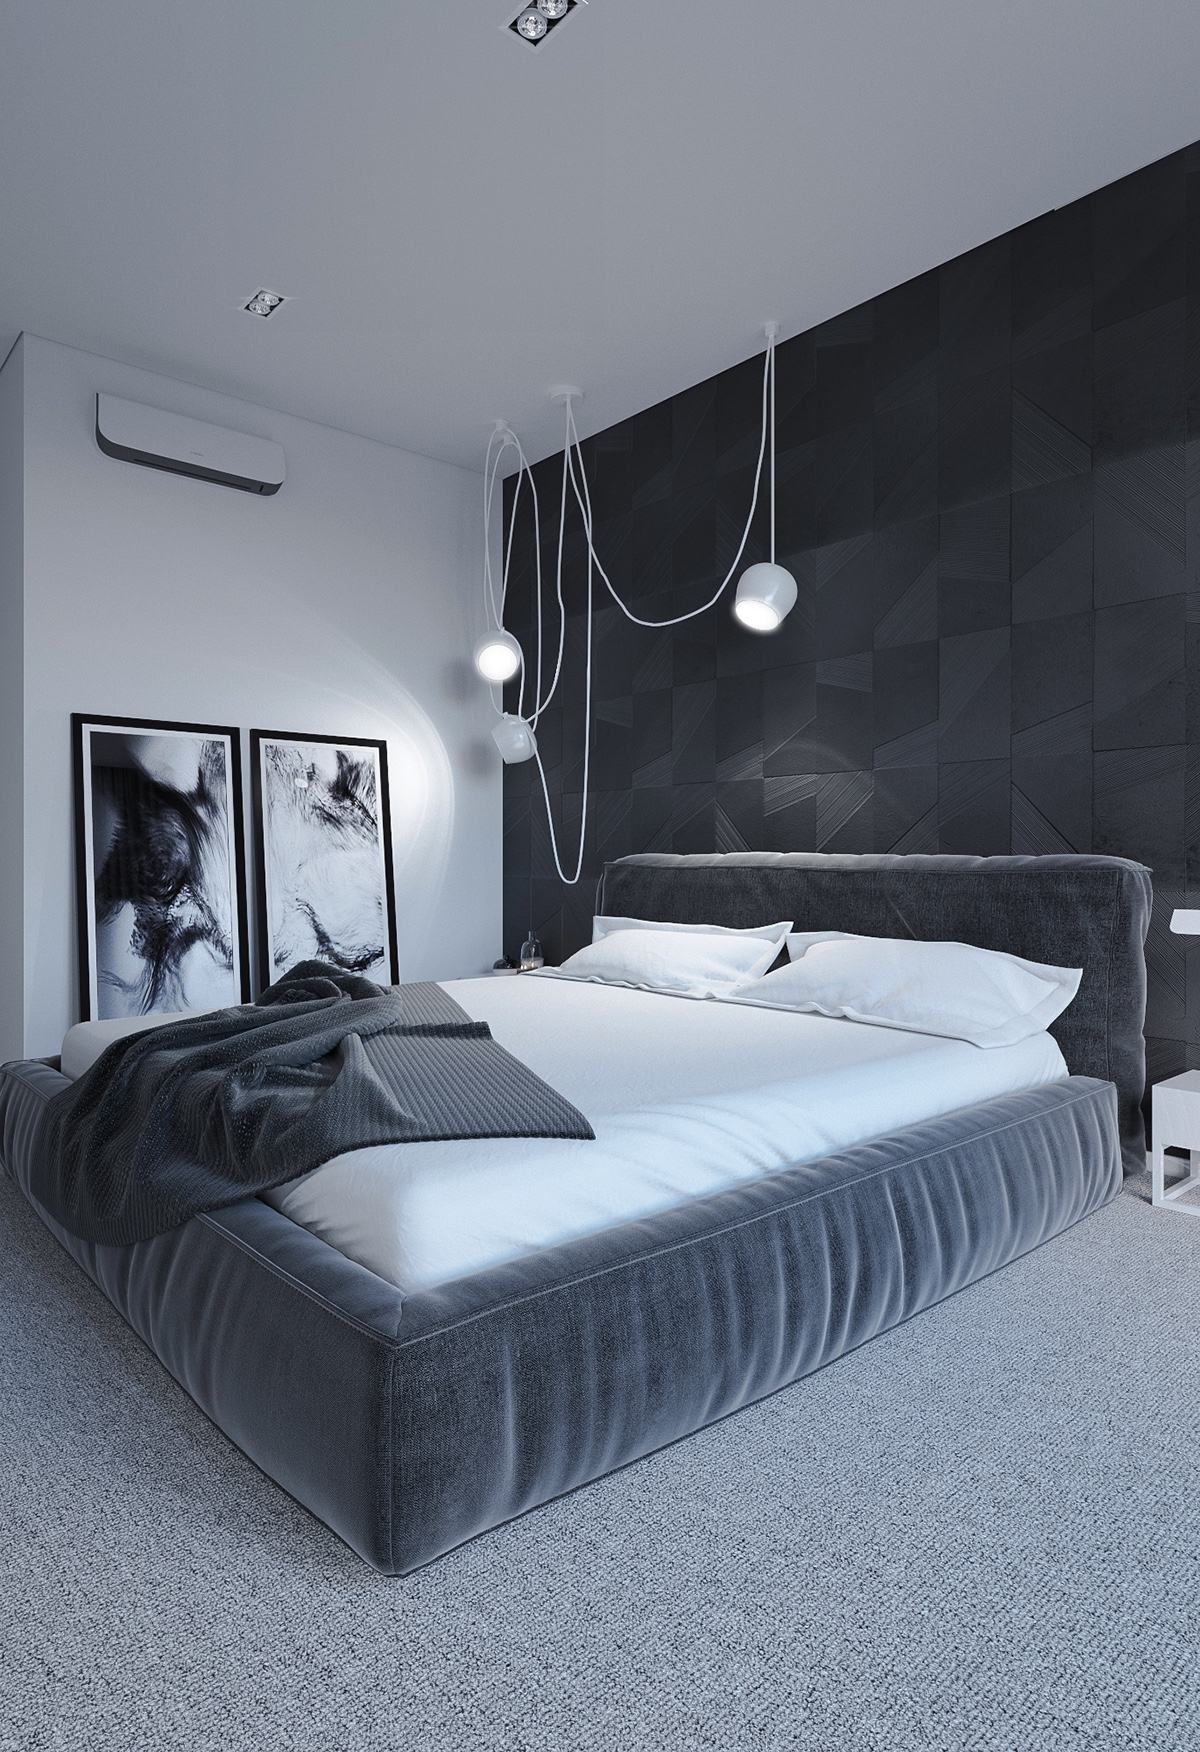 6 dark bedrooms designs to inspire sweet dreams for Minimalist black and white bedroom